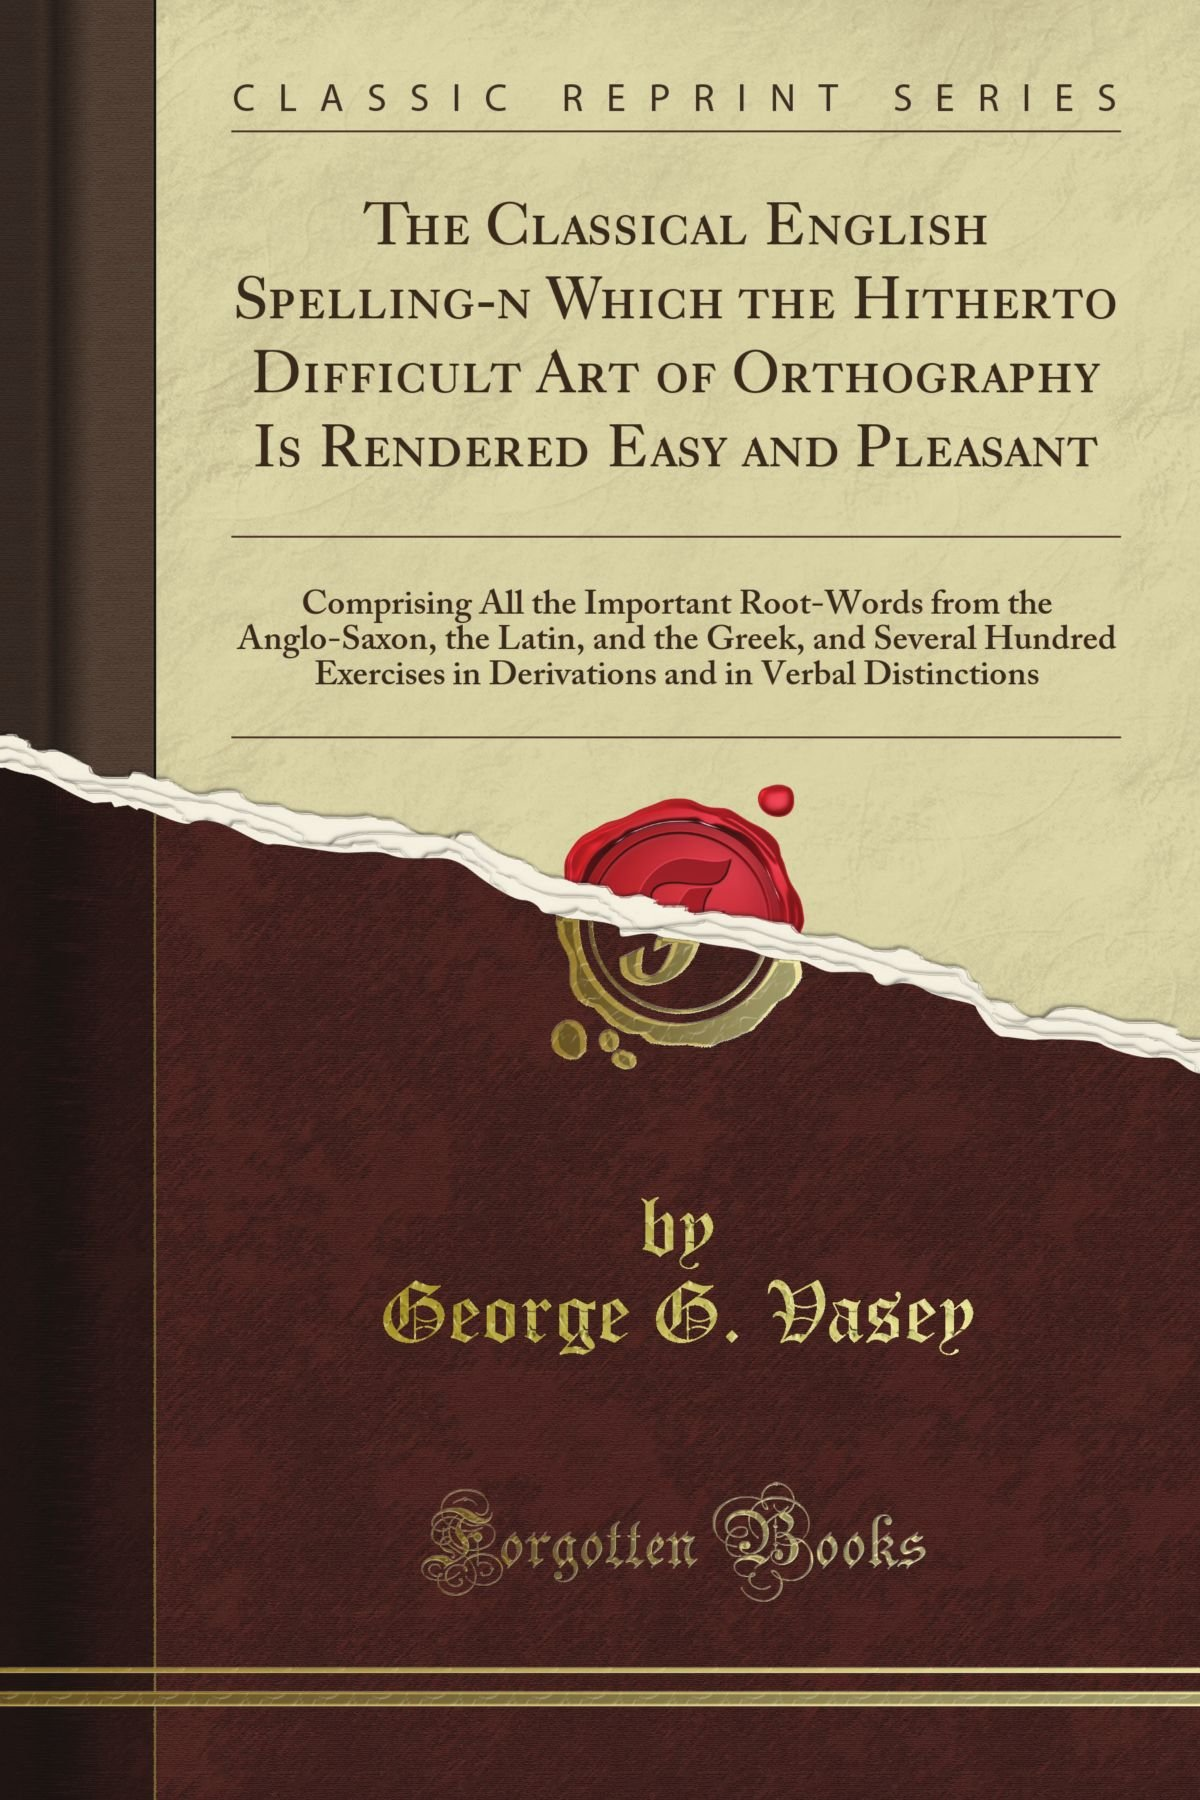 The Classical English Spelling-n Which the Hitherto Difficult Art of Orthography Is Rendered Easy and Pleasant (Classic Reprint) pdf